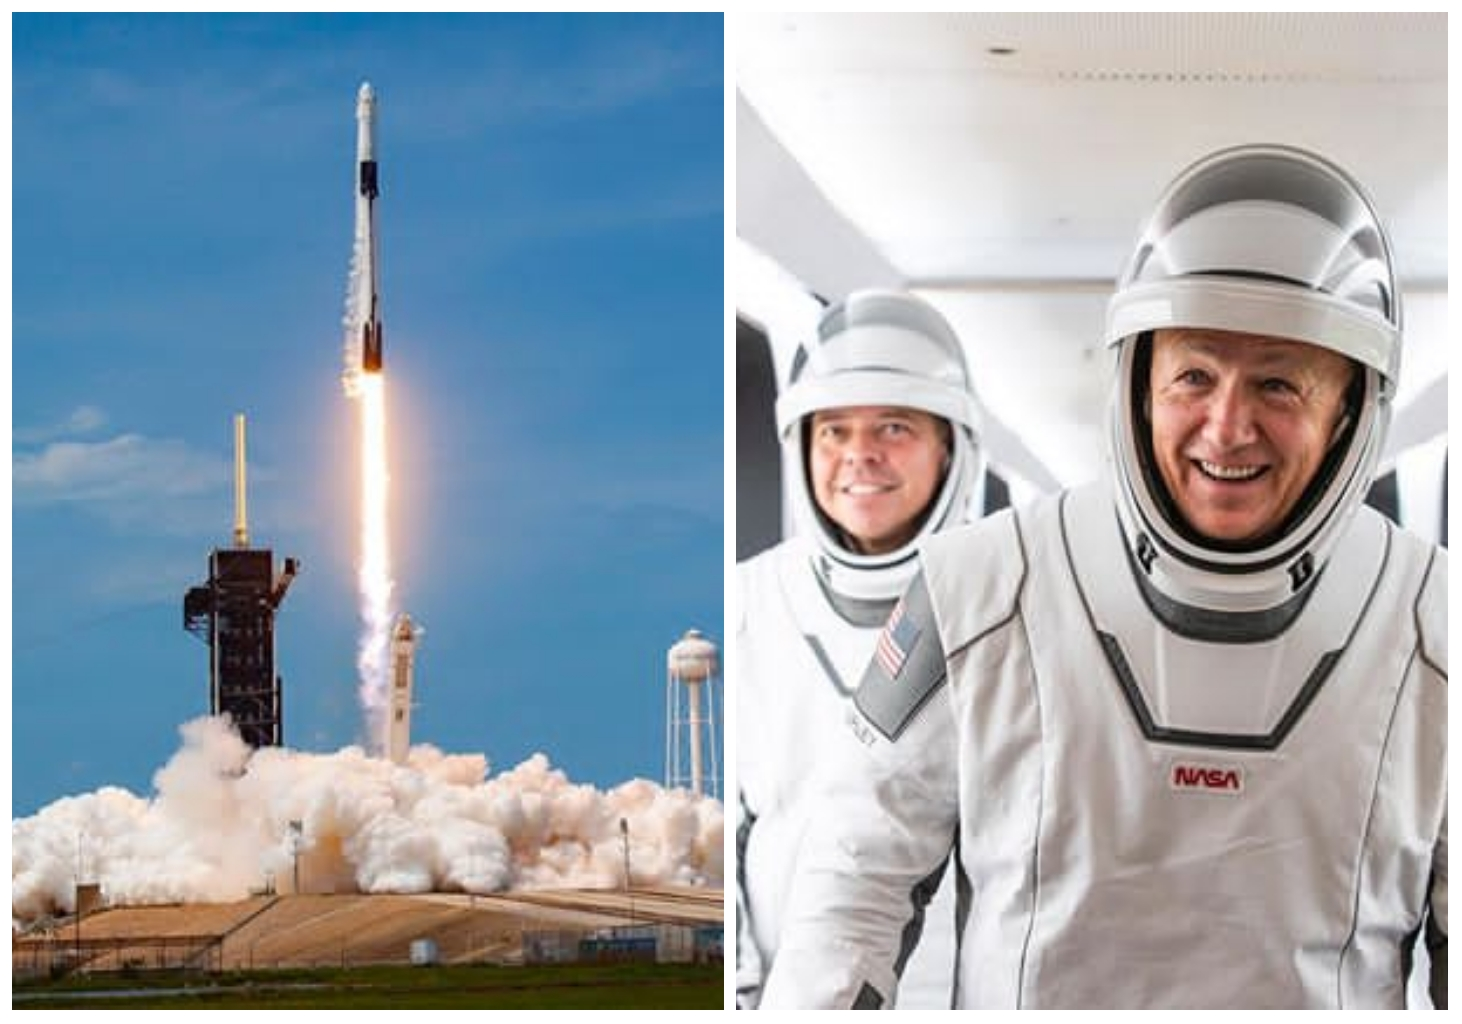 SpaceX successfully launches NASA Astronauts to Space Station